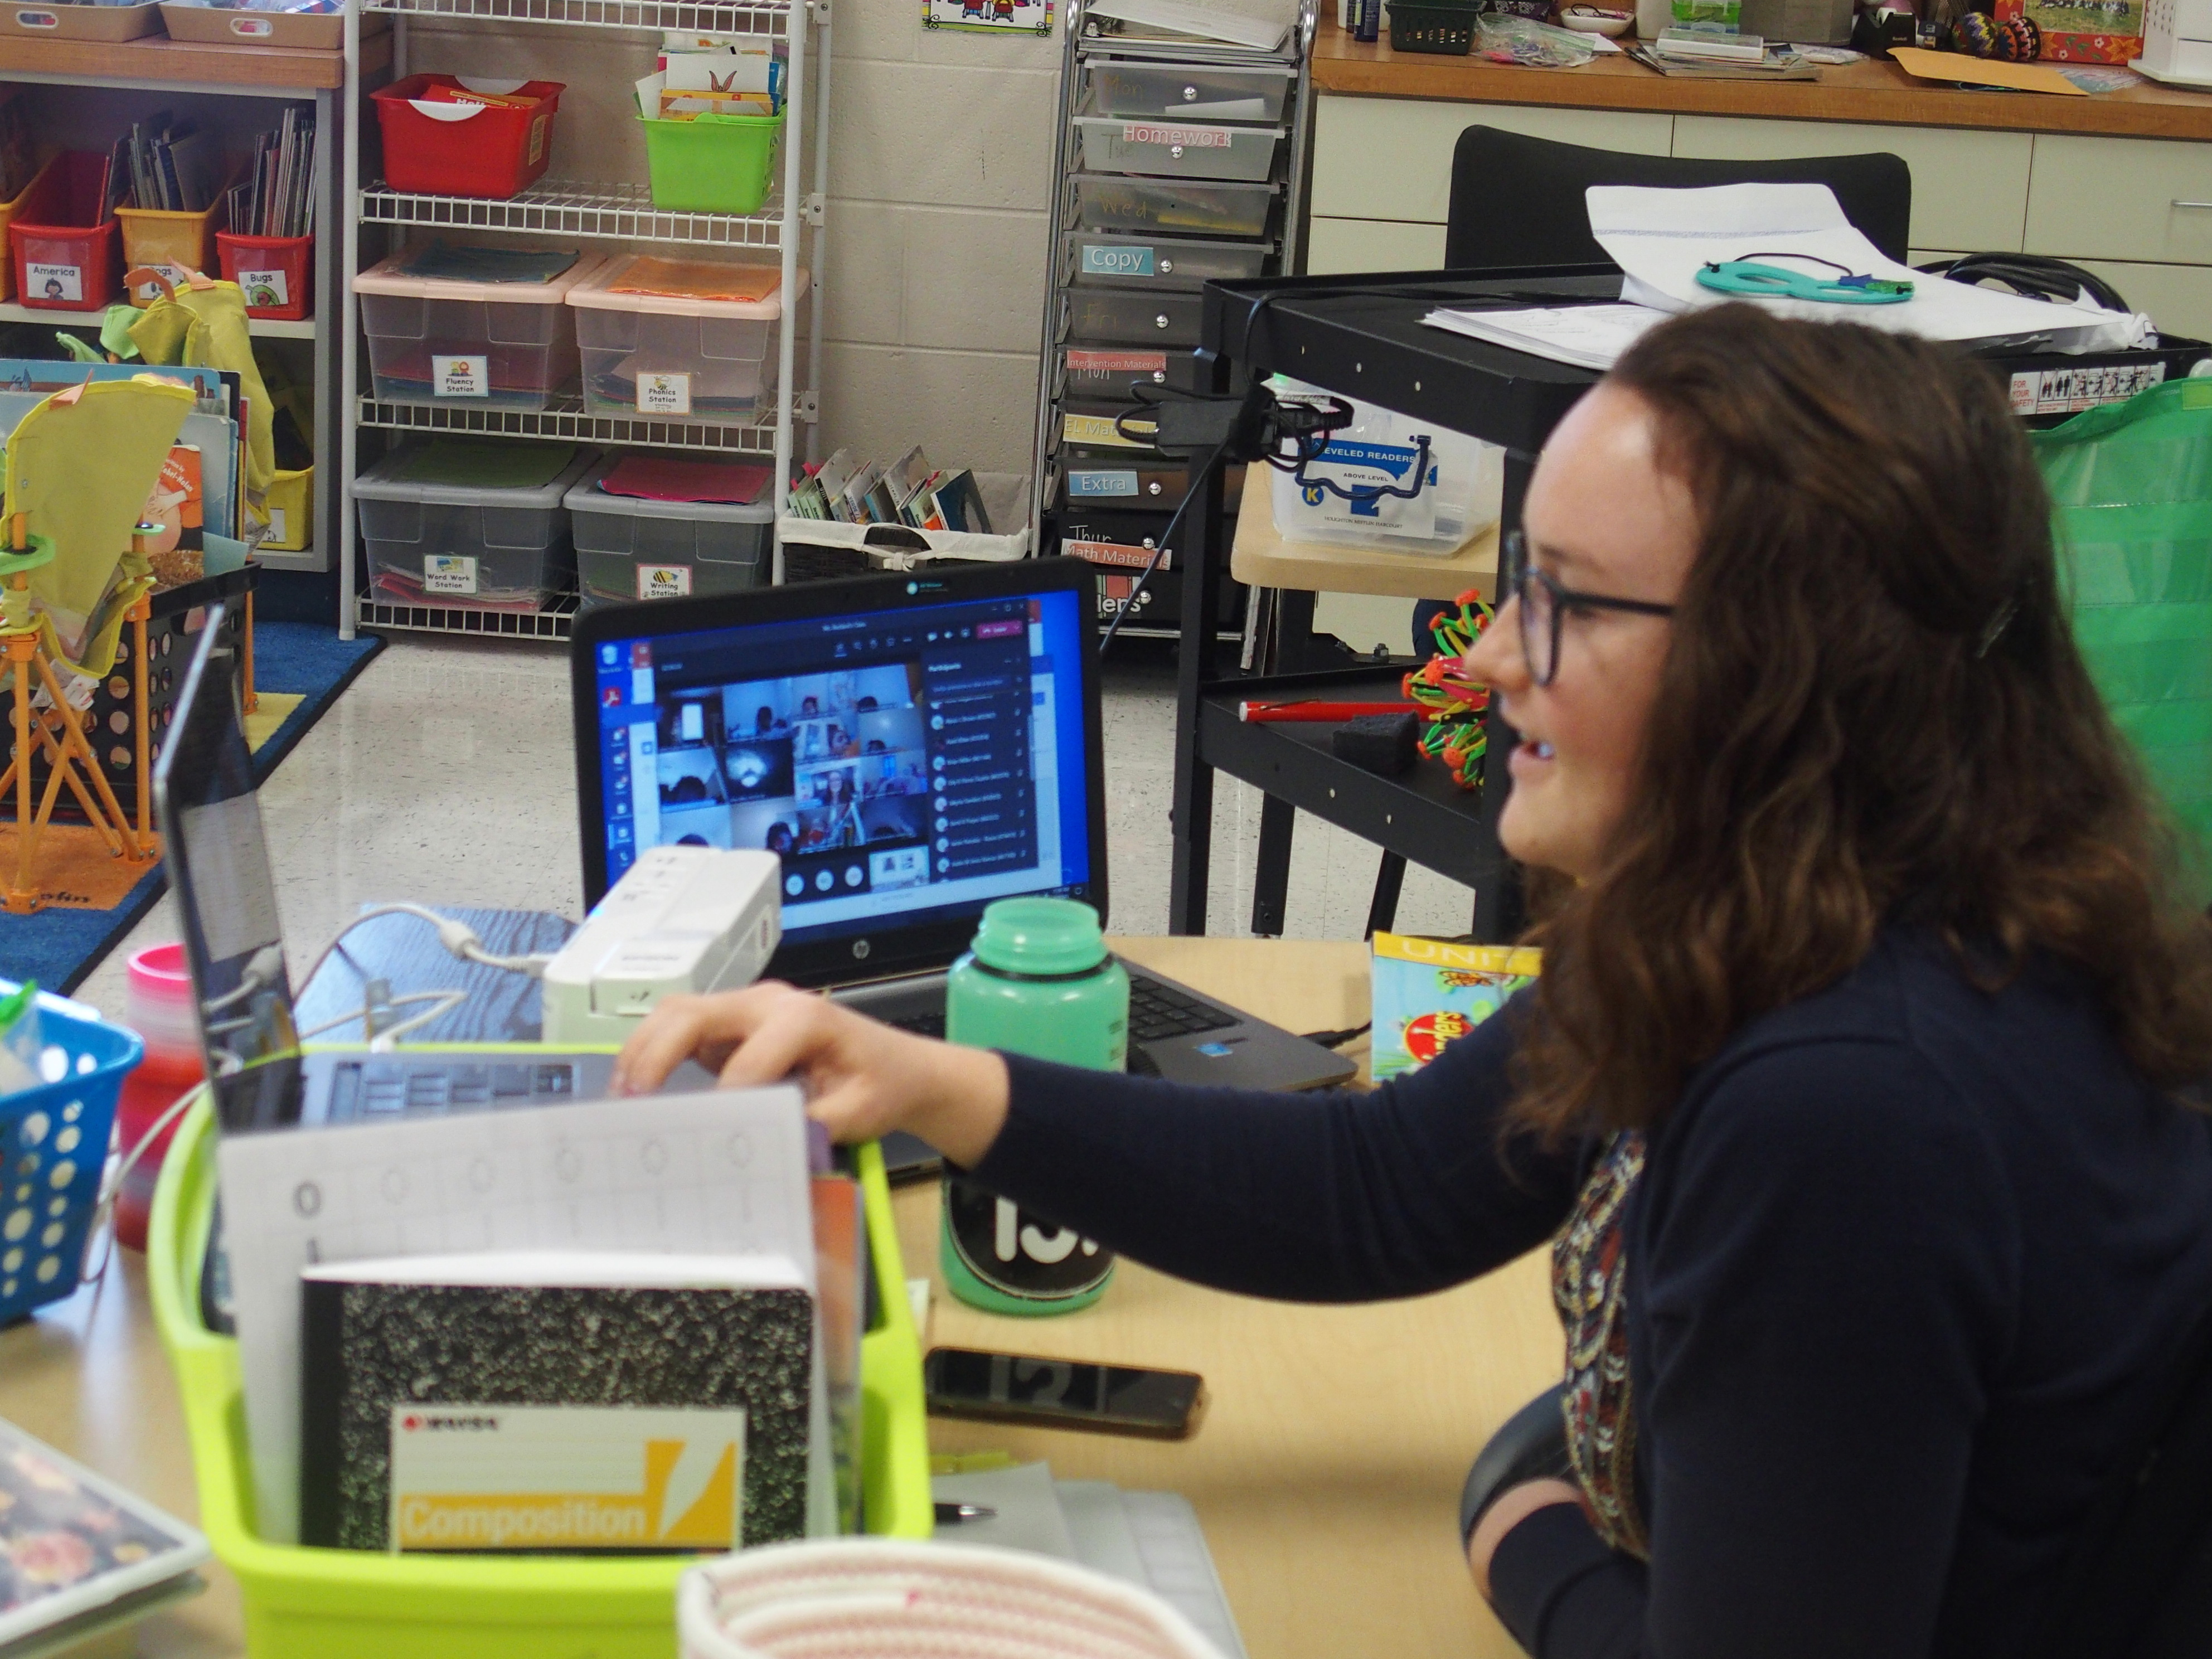 A teacher has two laptops set up at her classroom desk so she can instruct and see her students on videoconference.